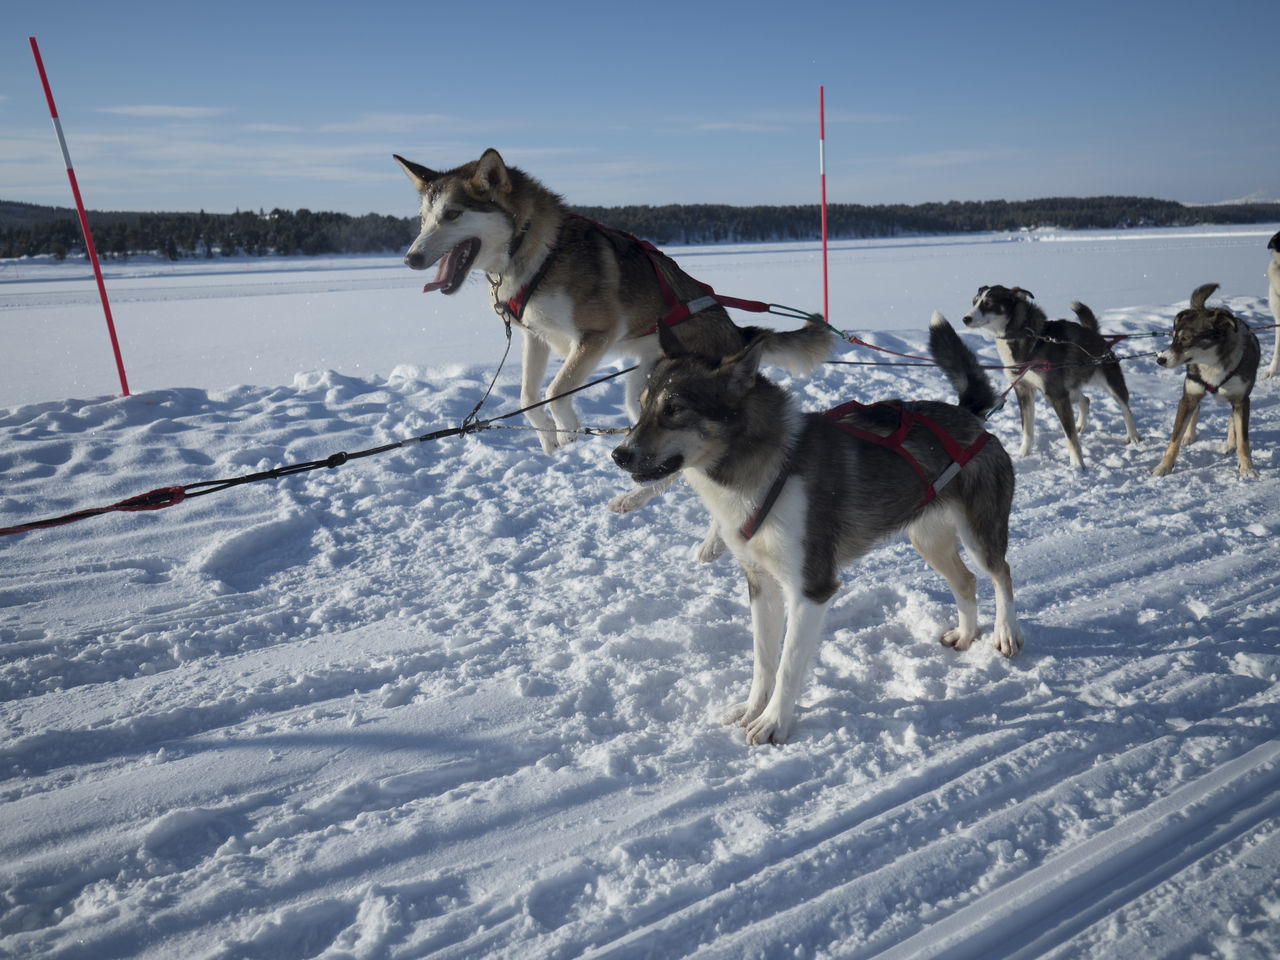 Animal Themes Cold Temperature Day Dog Kiruna Landscape No People Outdoors Pets Siberian Husky Sled Dog Snow Winter Working Animal